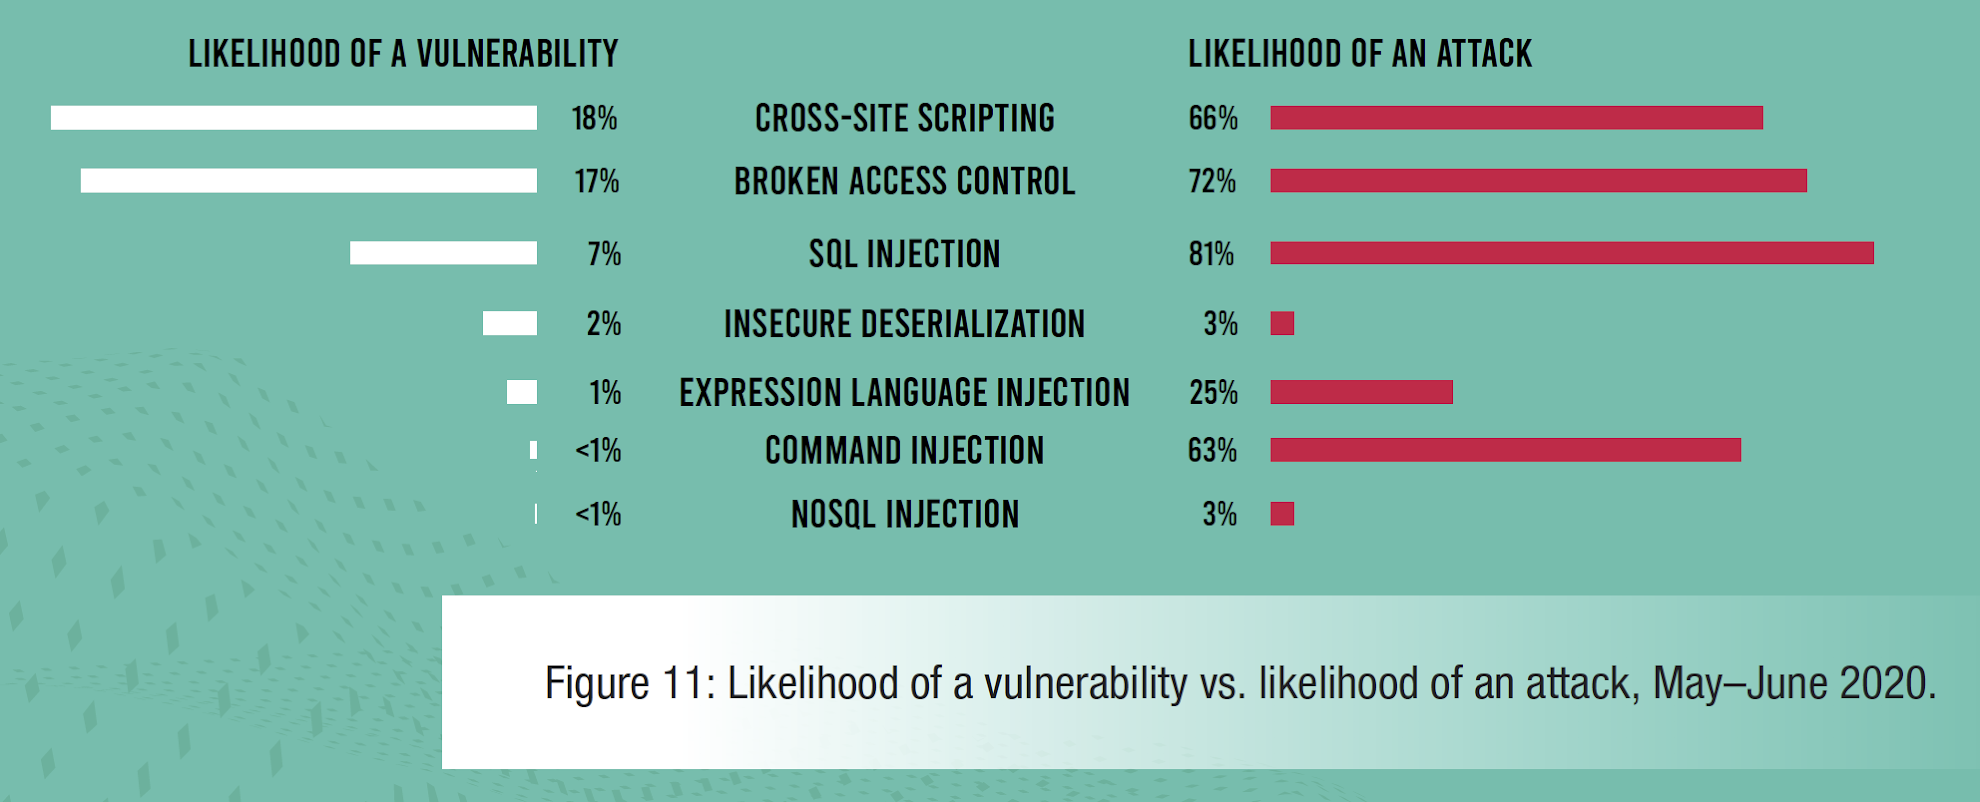 Figure 11: Likelihood of a vulnerability vs. likelihood of an attack, May–June 2020.